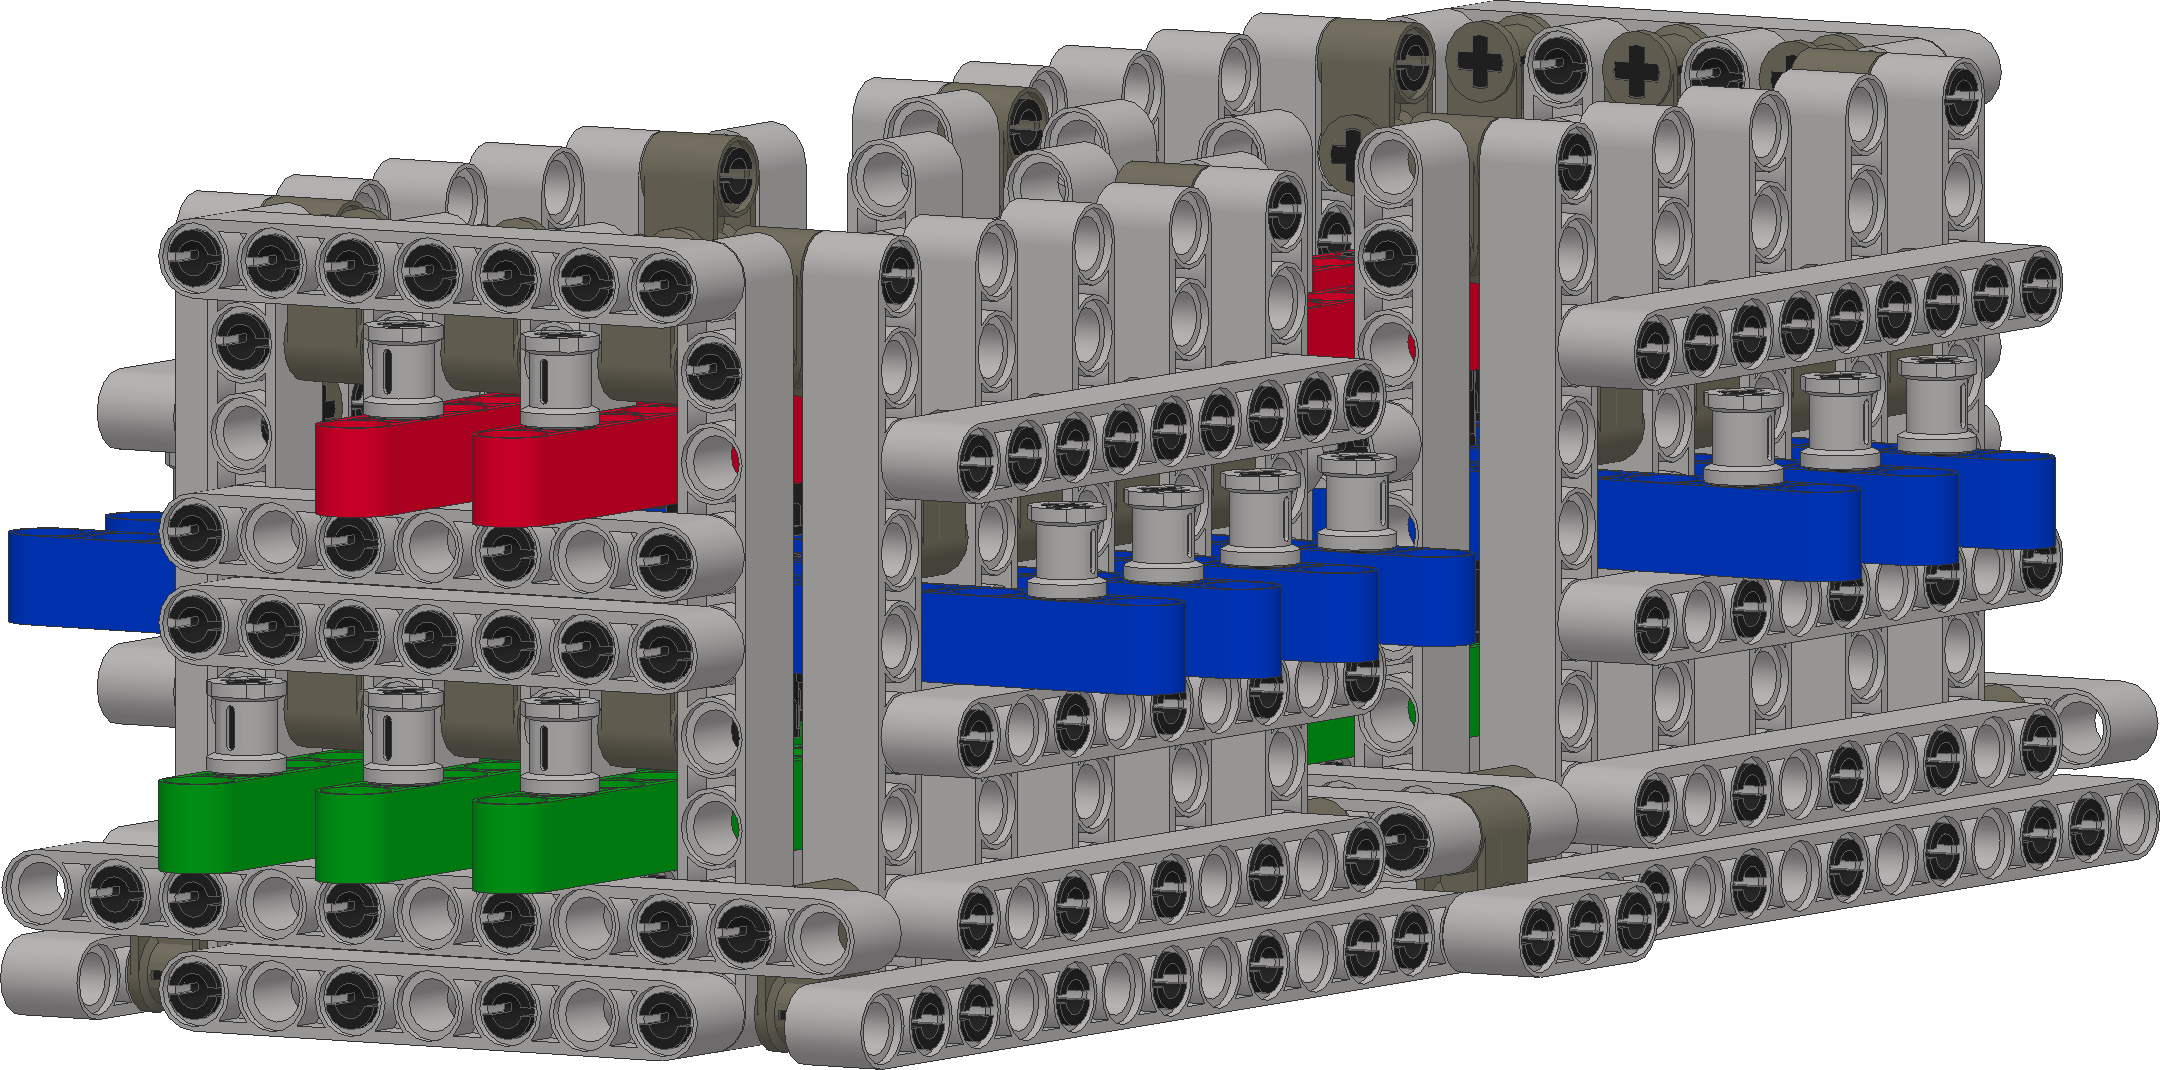 LEGO 1-bit full adder